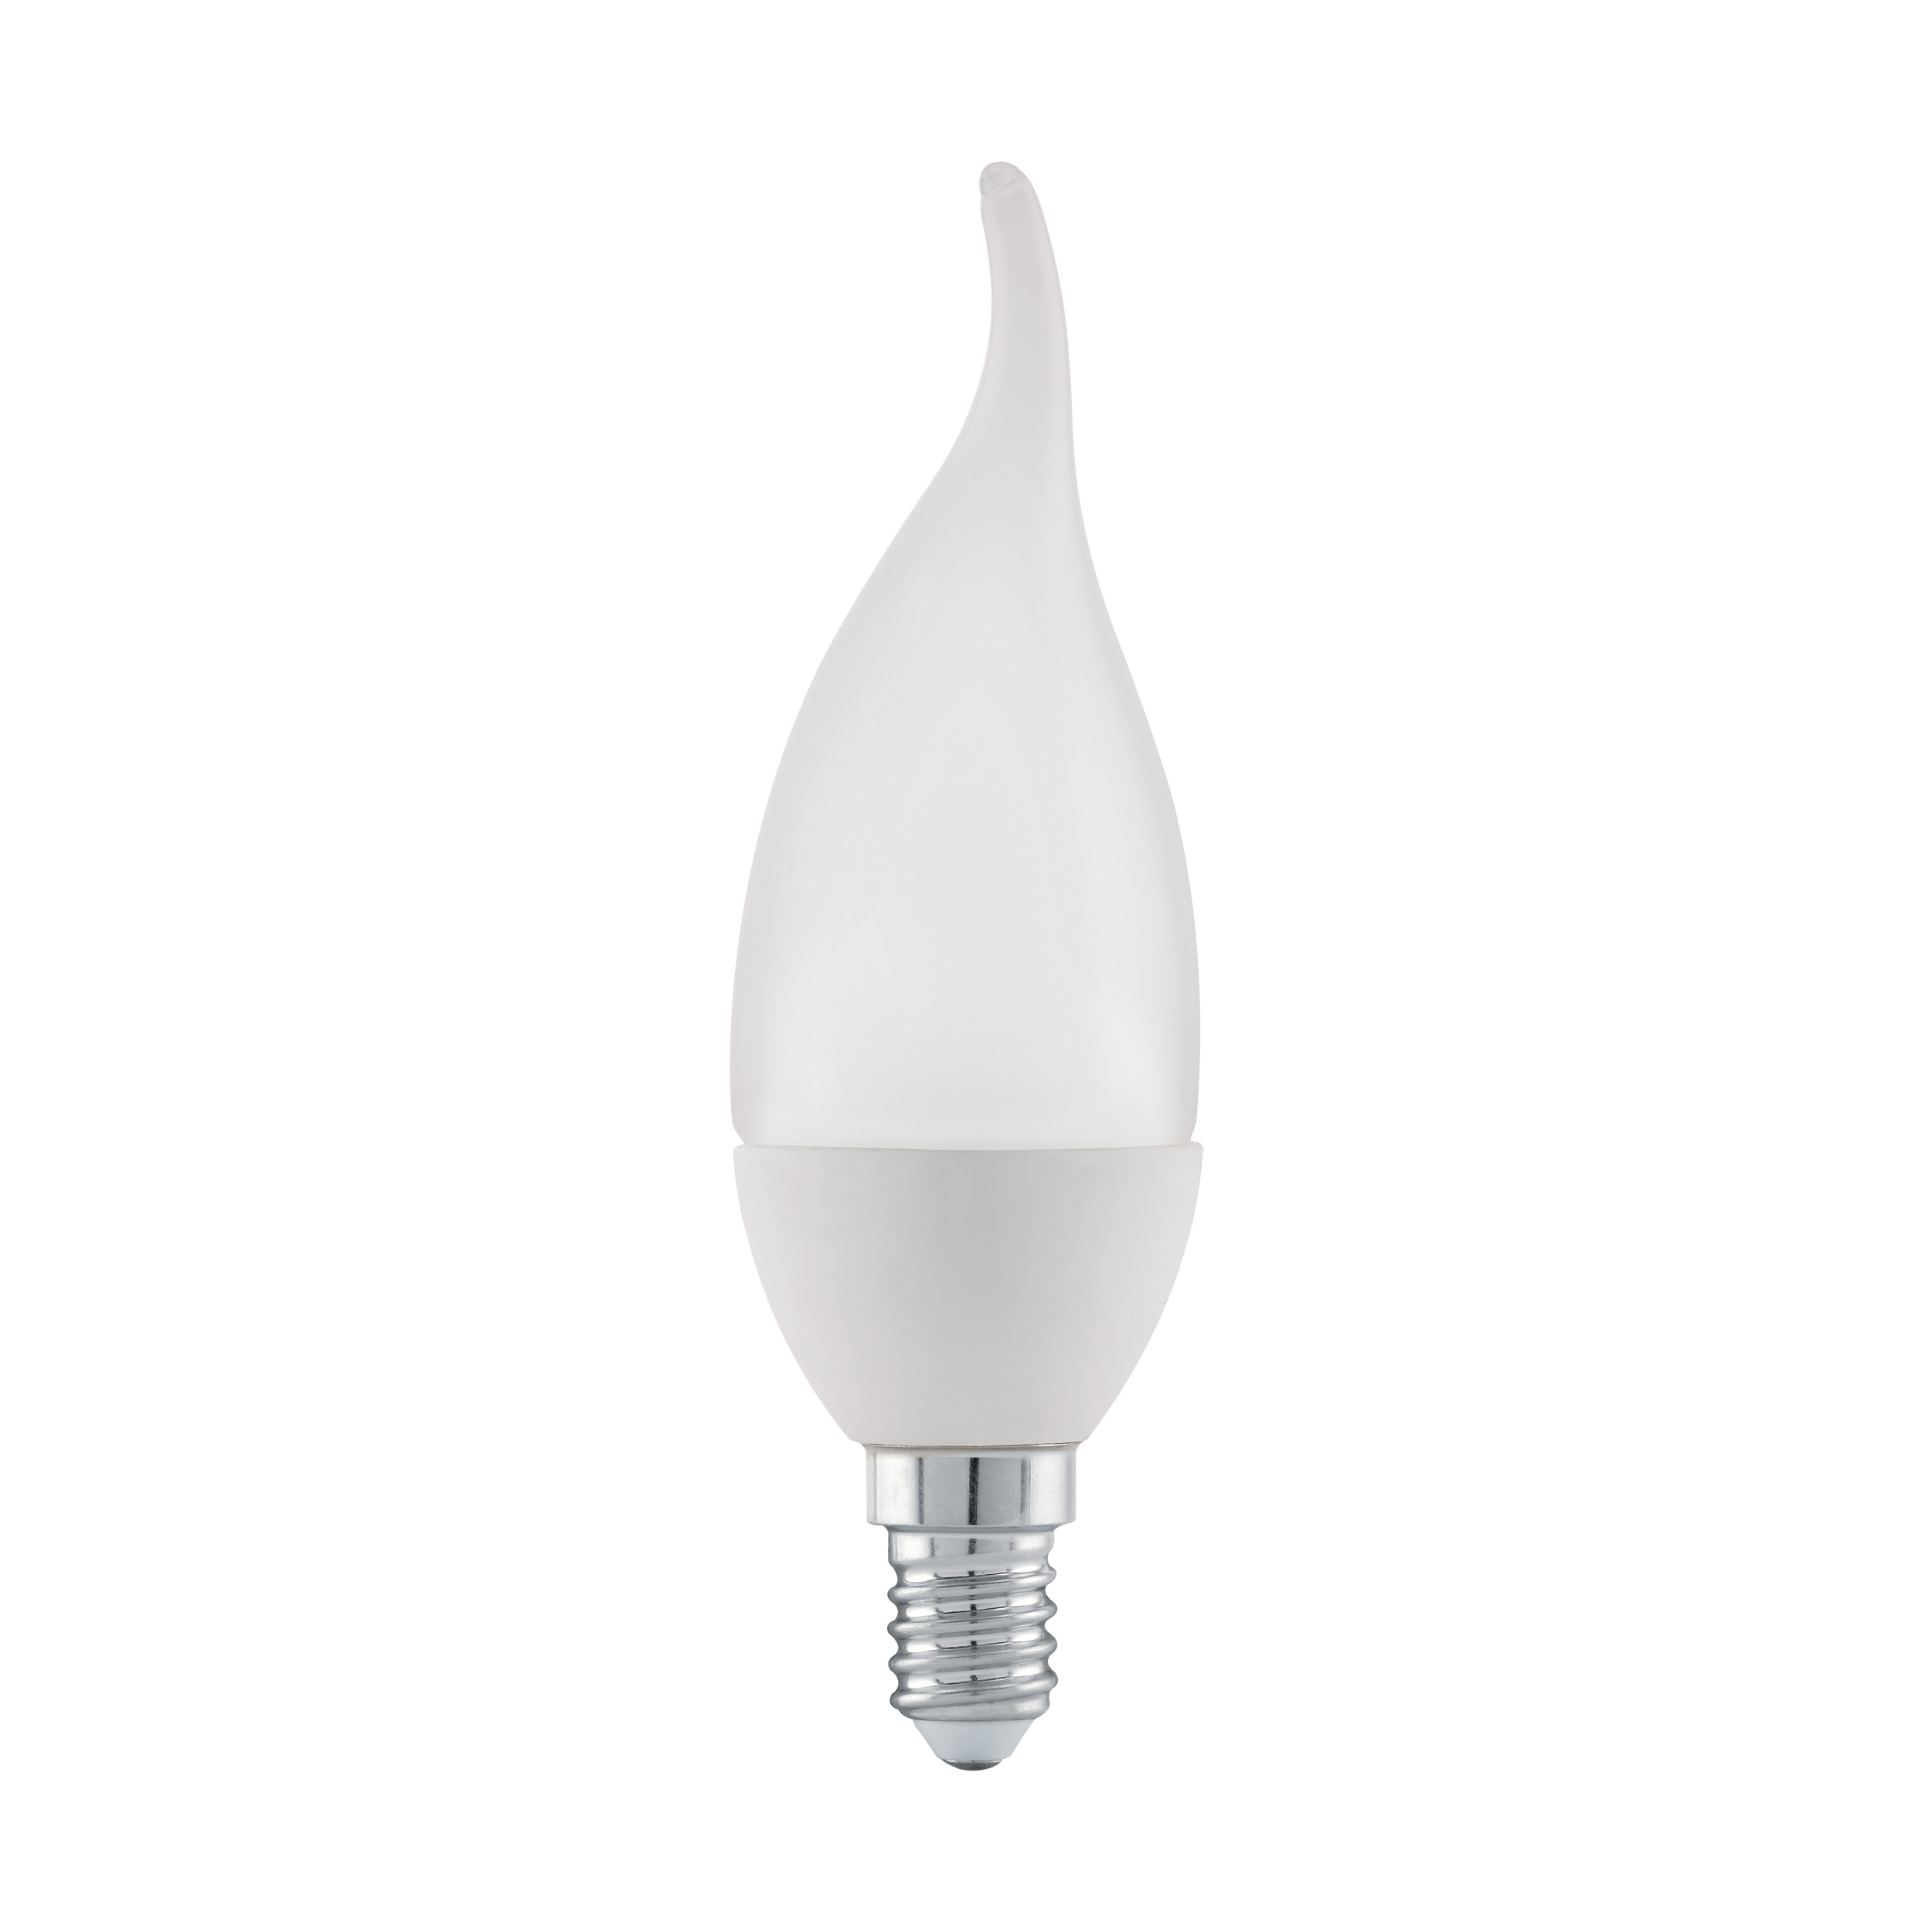 1 Stk E14-LED-CF37 4W / Windstosskerze 3000  LI69187---